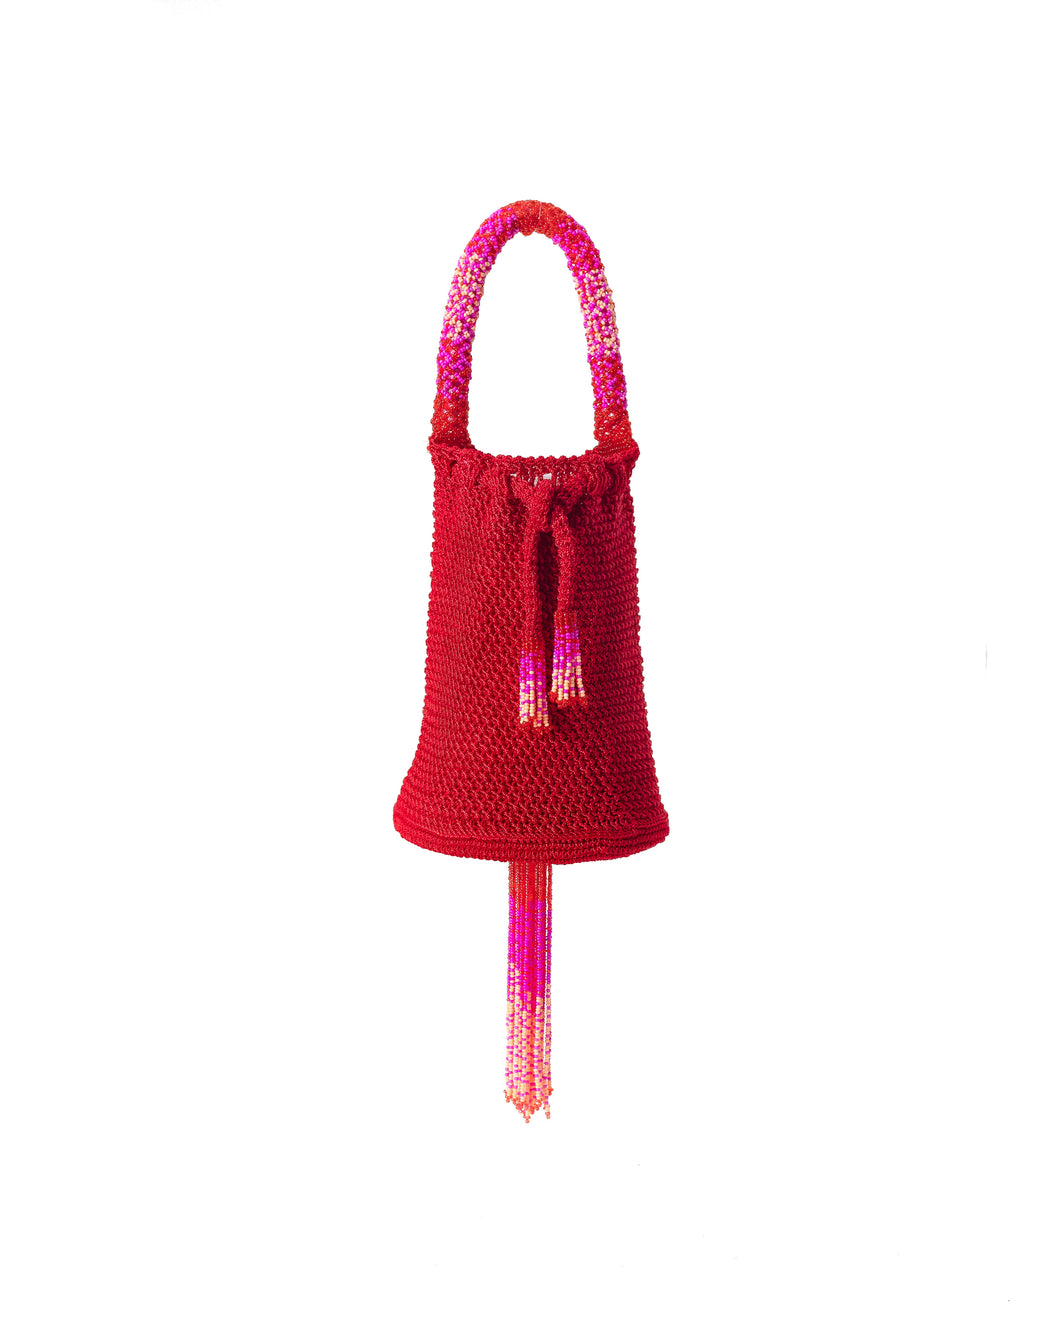 Red Mini Crochet Party Bag - JETLAGMODE